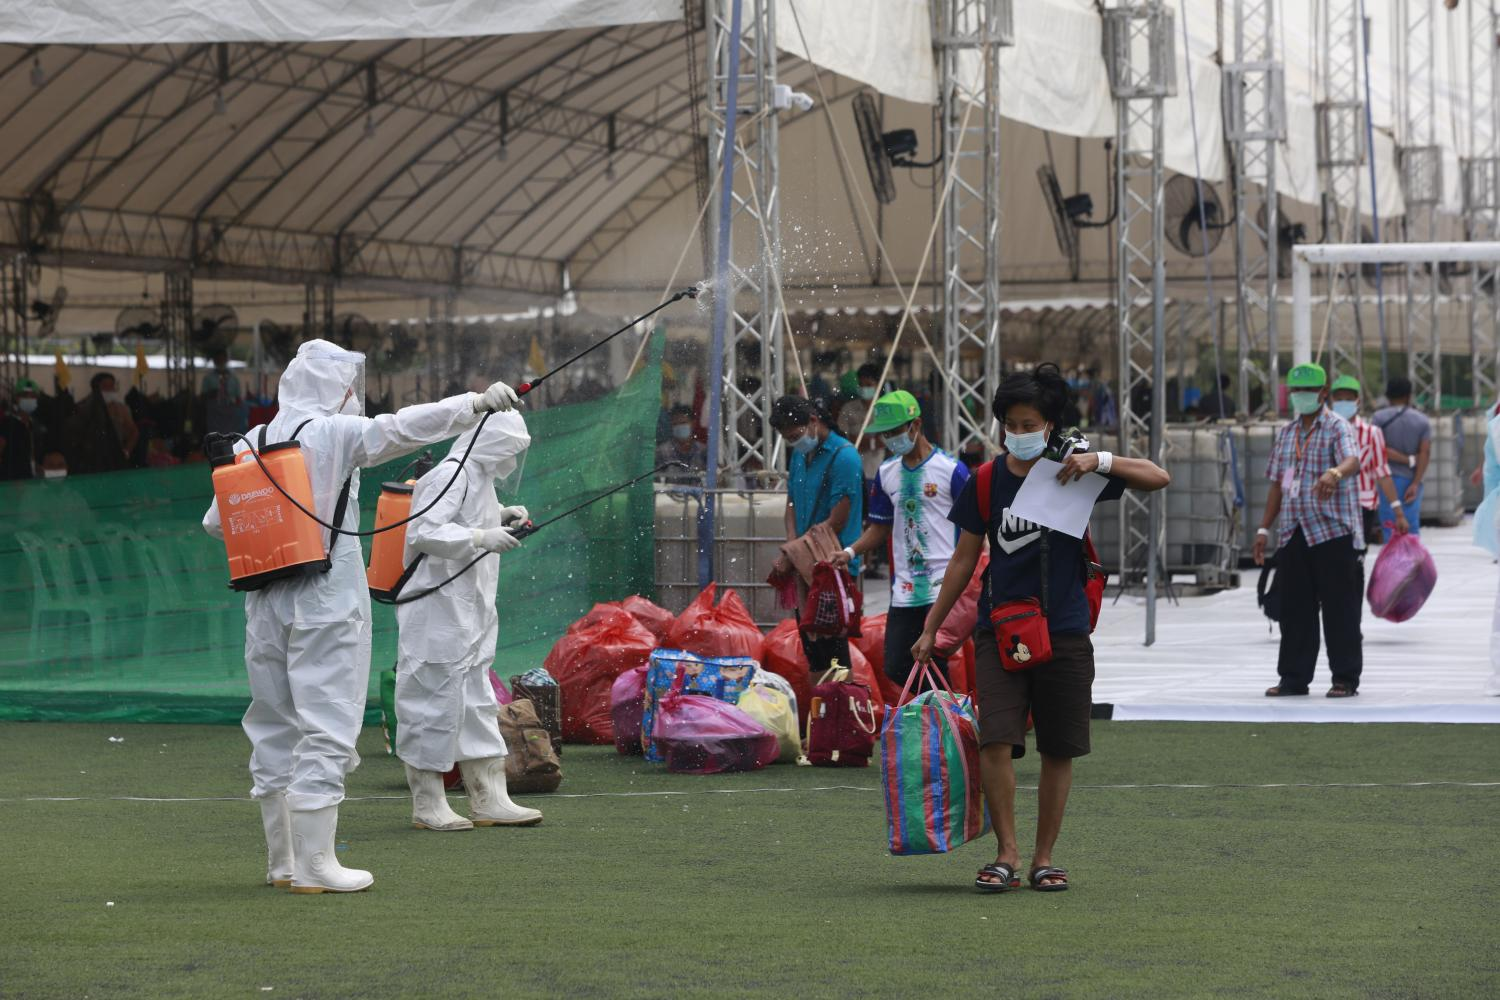 Migrant workers get sprayed with disinfectant as they leave the Covid-19 field hospital at Samut Sakhon's provincial stadium, after completing their quarantine period. (Photo by Arnun Chonmahatrakool)